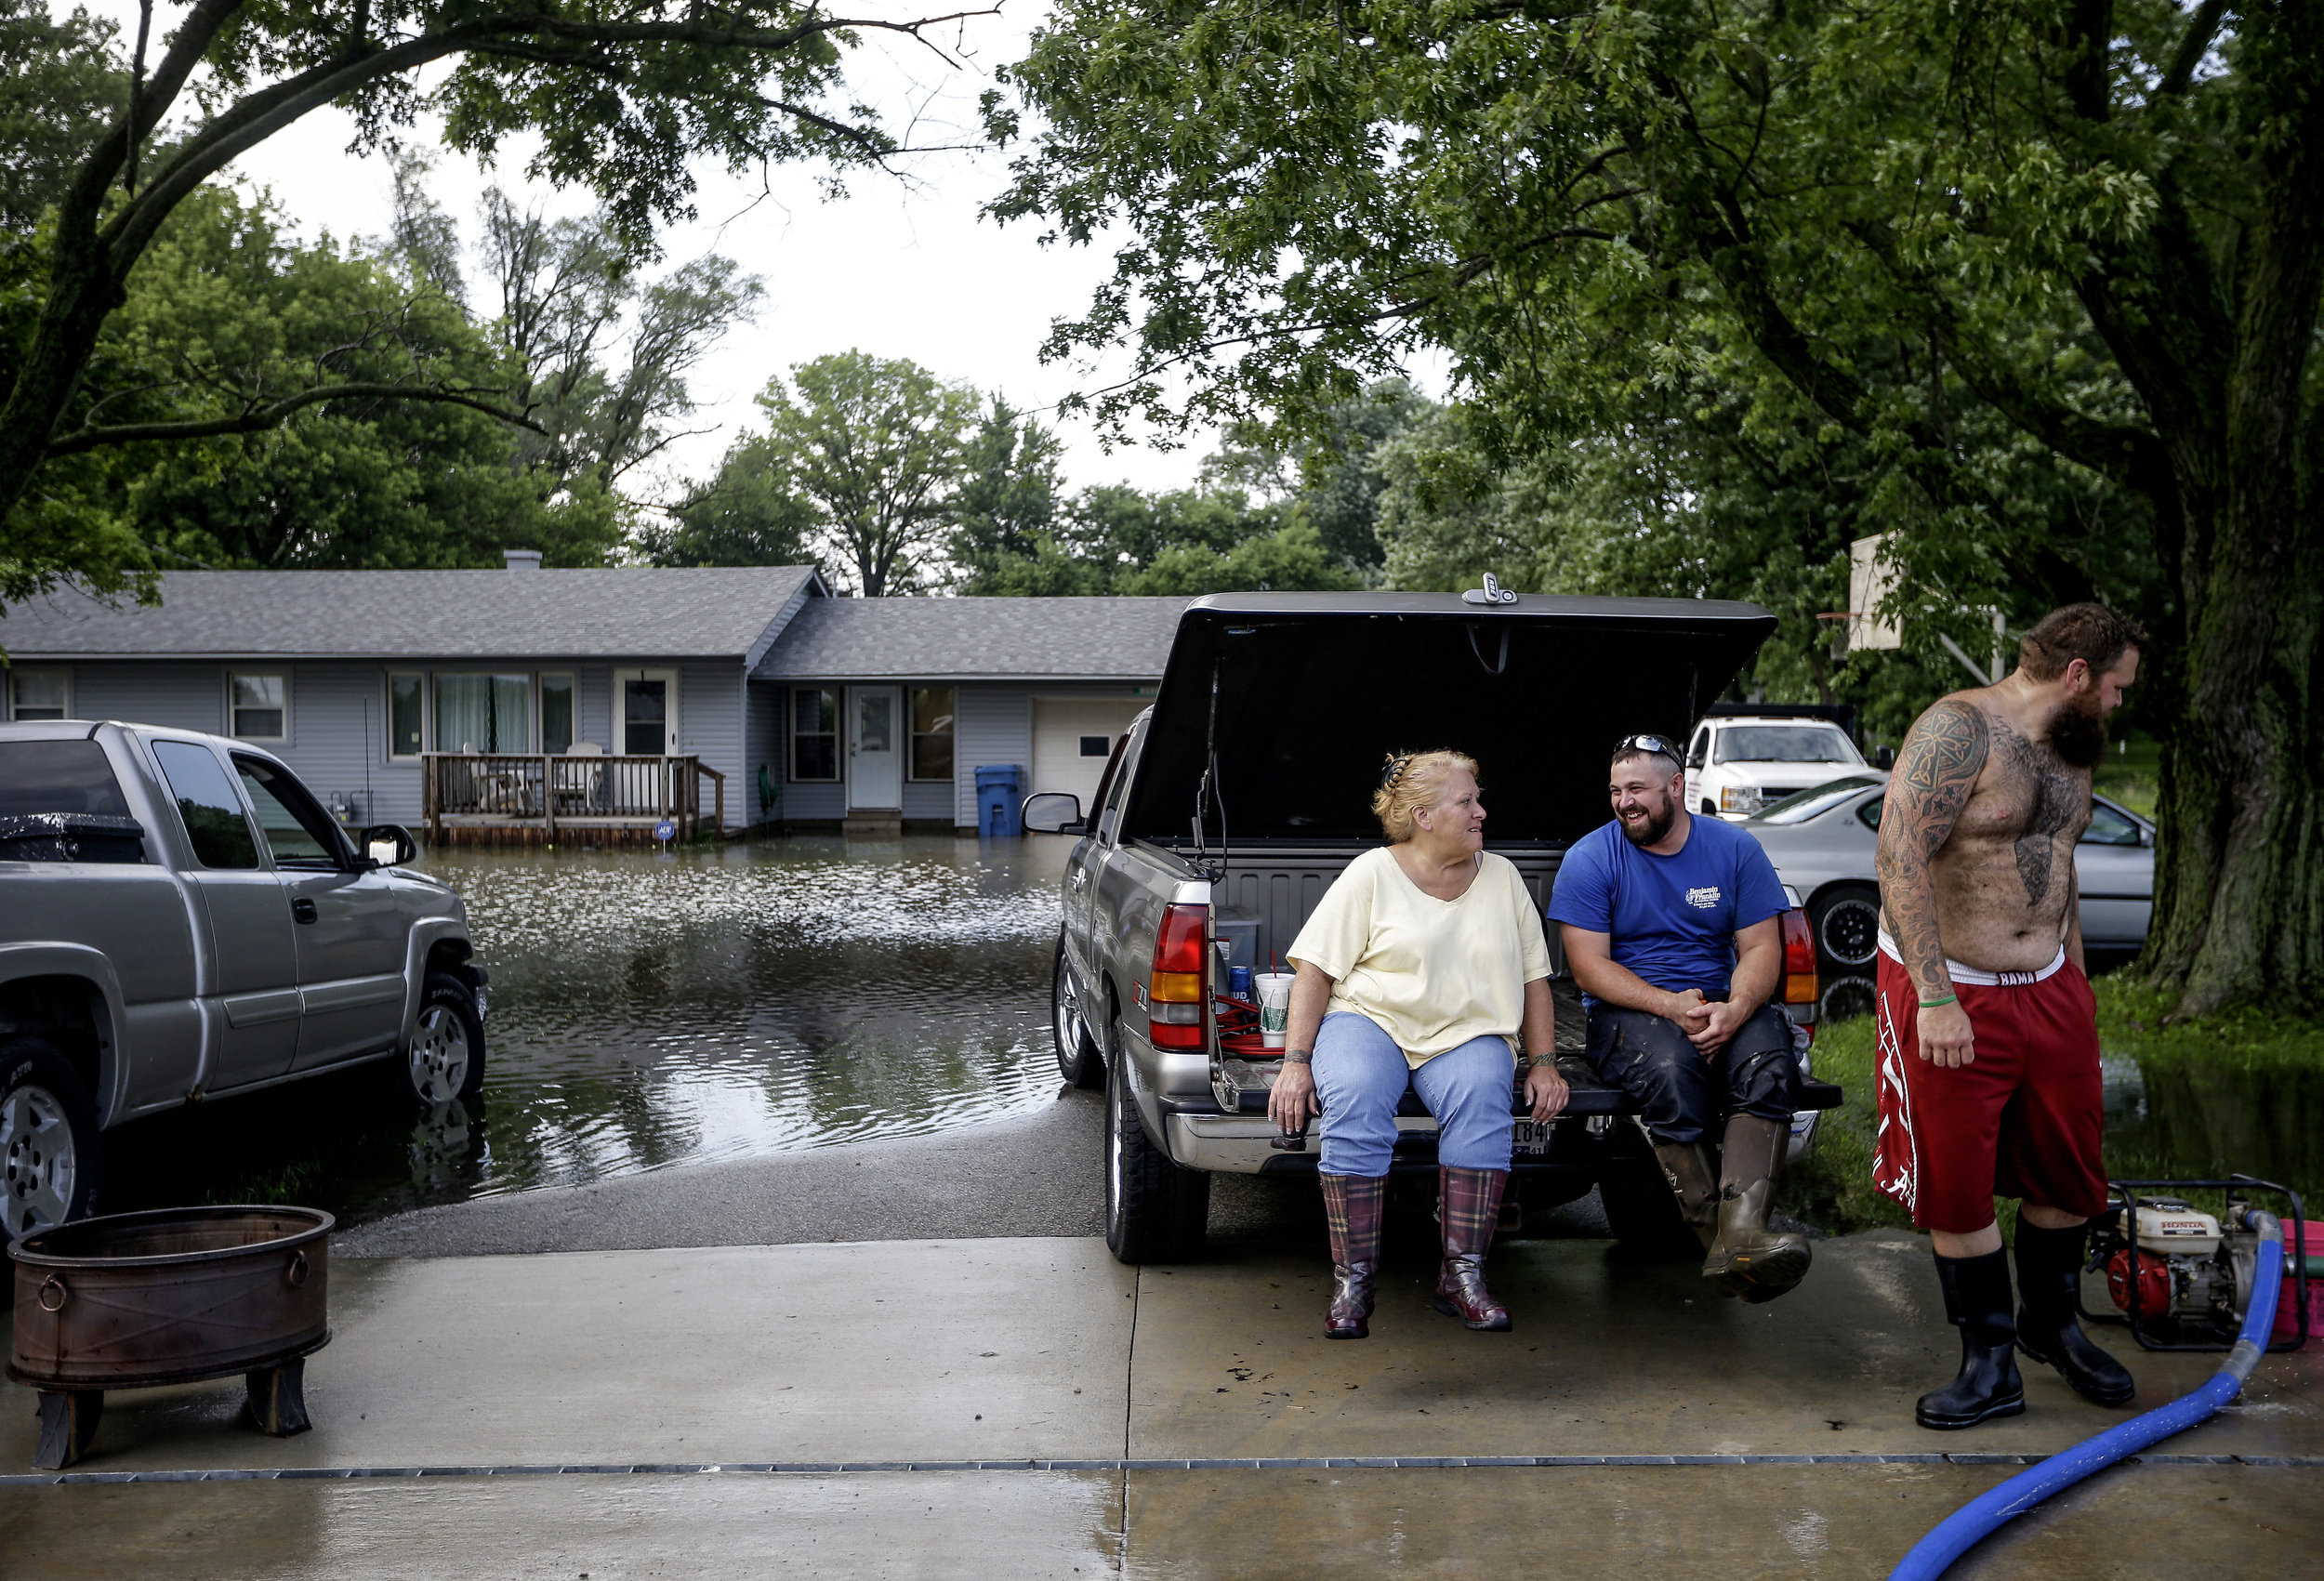 Margaret Morgan, Joe Forbes, and Kyle Morgan wait for a case of beer to arrive while a pump drains the water from Kyle Morgan's front yard in Whiteland, Ind., on Tuesday, July 11, 2017.